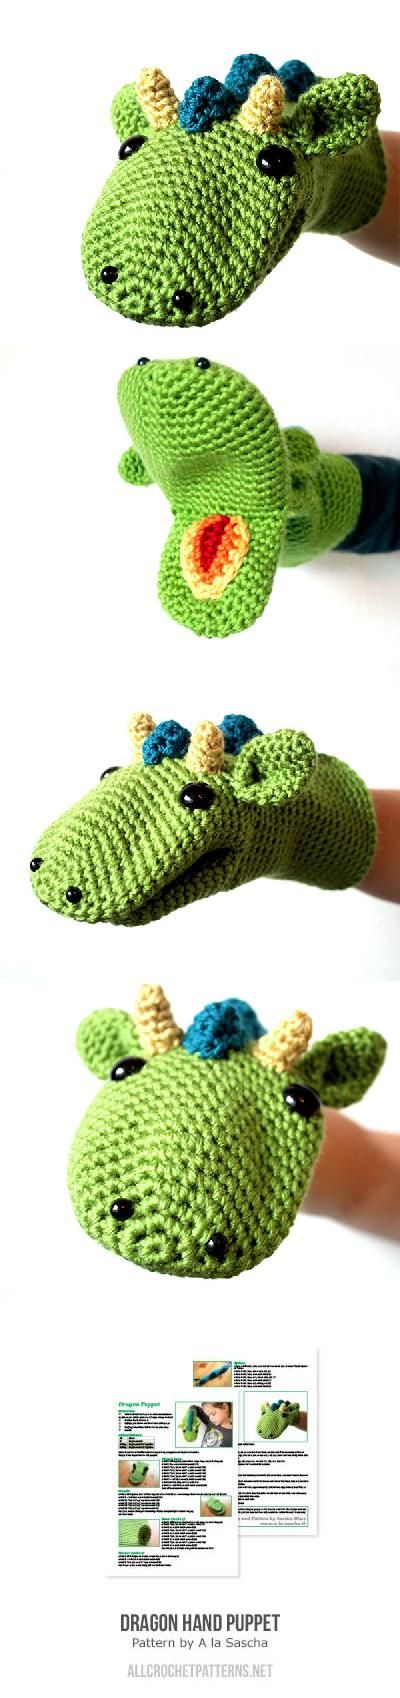 Dragon Hand Puppet Crochet Pattern